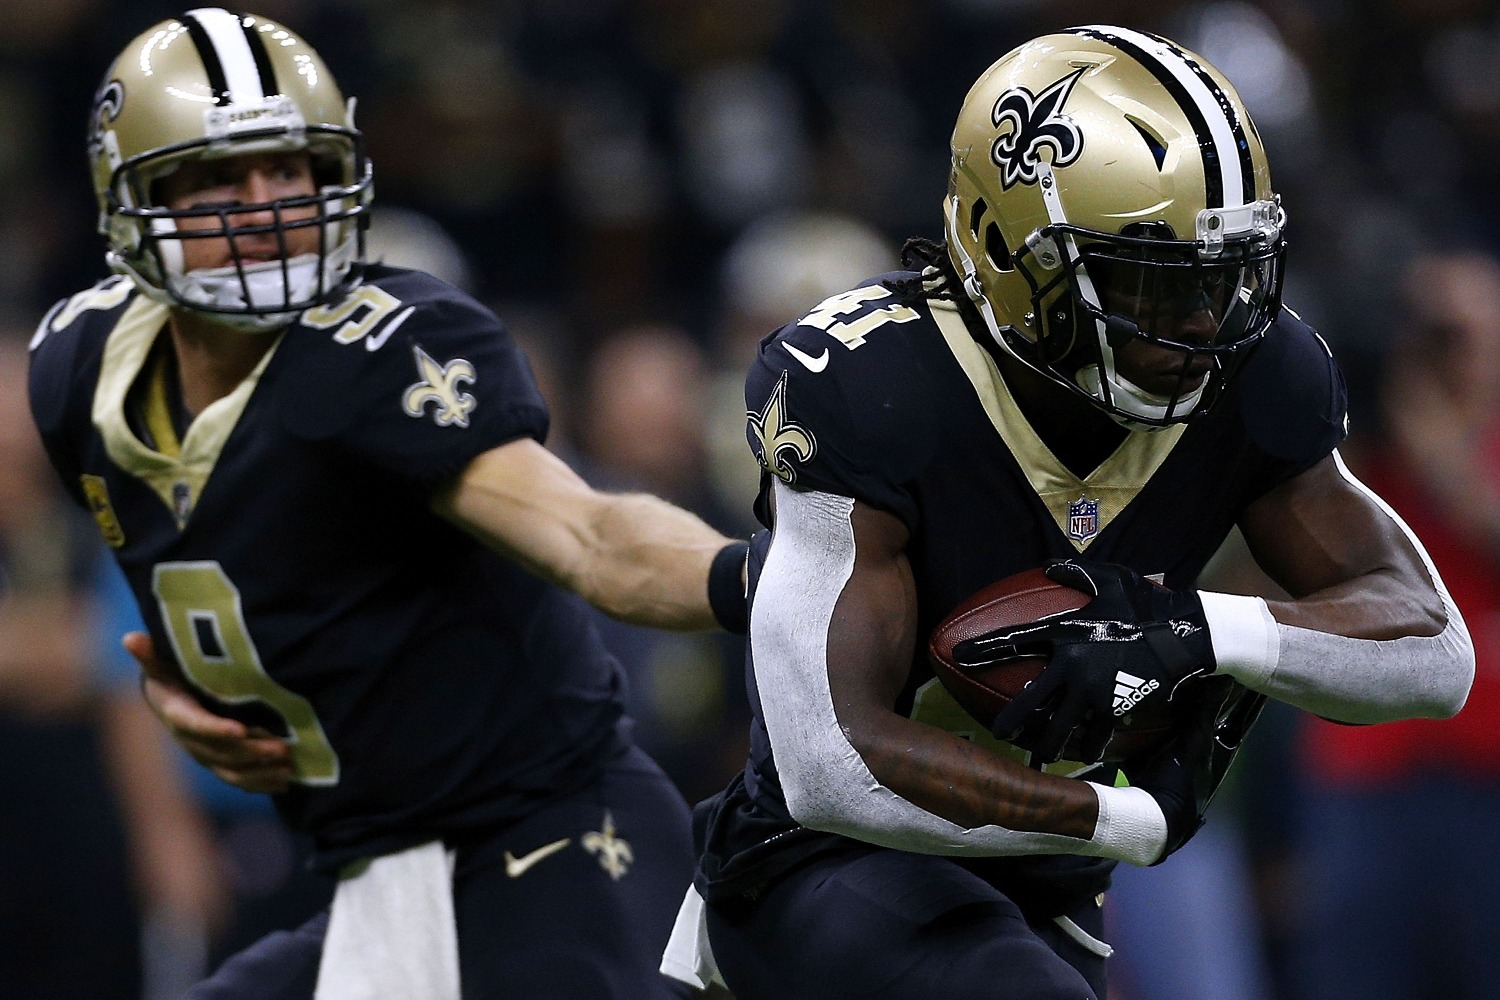 By signing Alvin Kamara to a $75 million extension, the New Orleans Saints sent a clear message about the future of the franchise after Drew Brees.